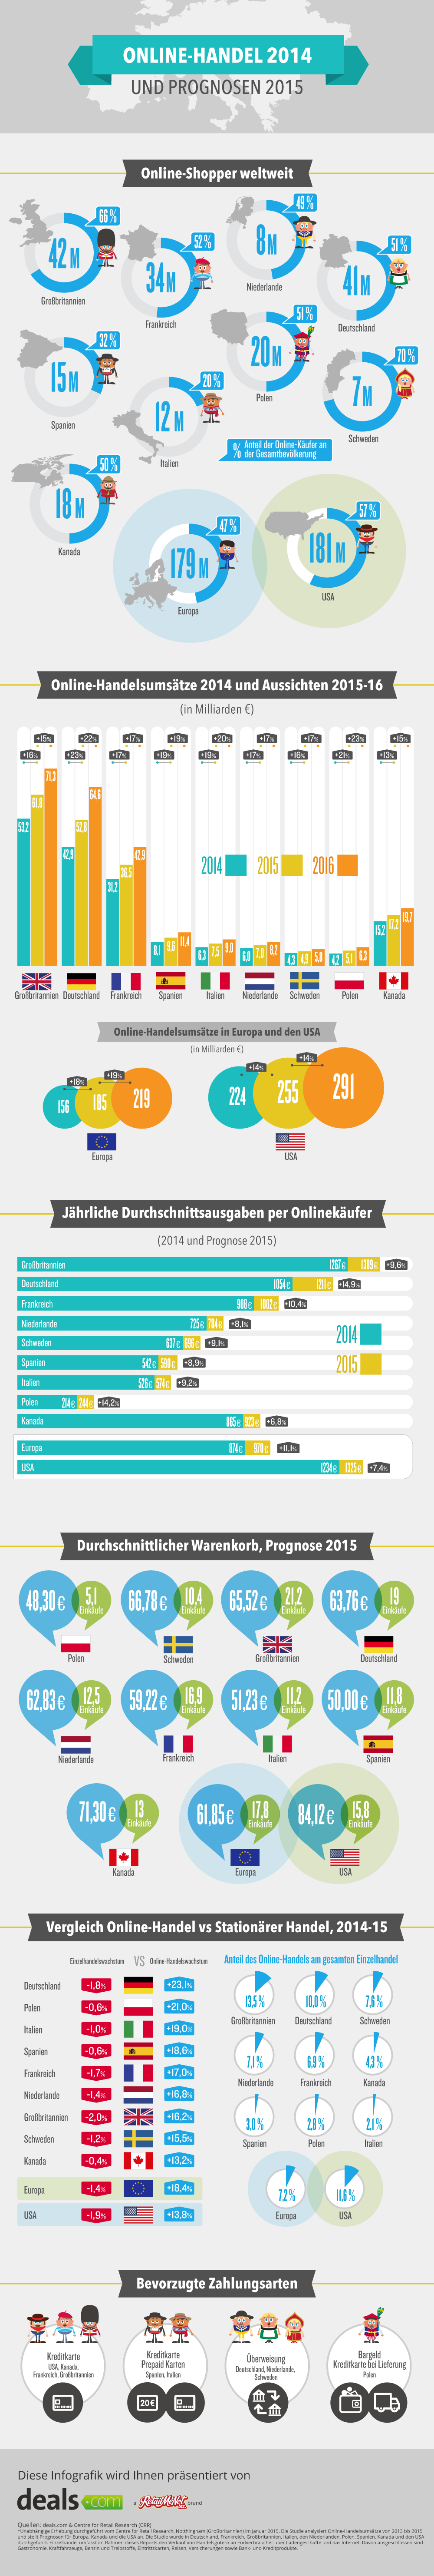 Infographic ecommerce Europe 2014/2015/2016